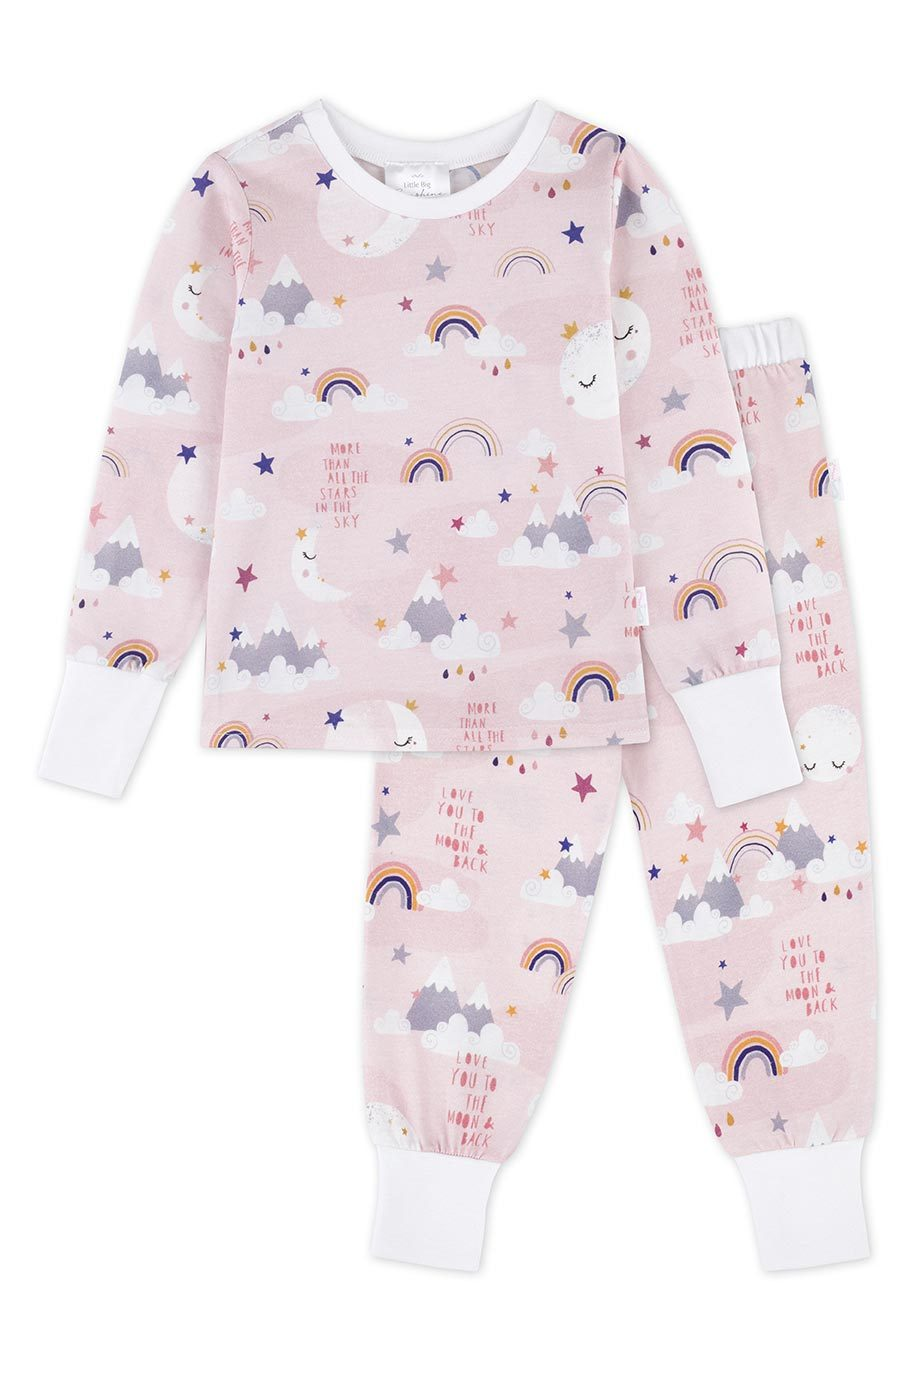 pyjamaset-kinderpyjamaset-moon-mond-baumwolle-cotton